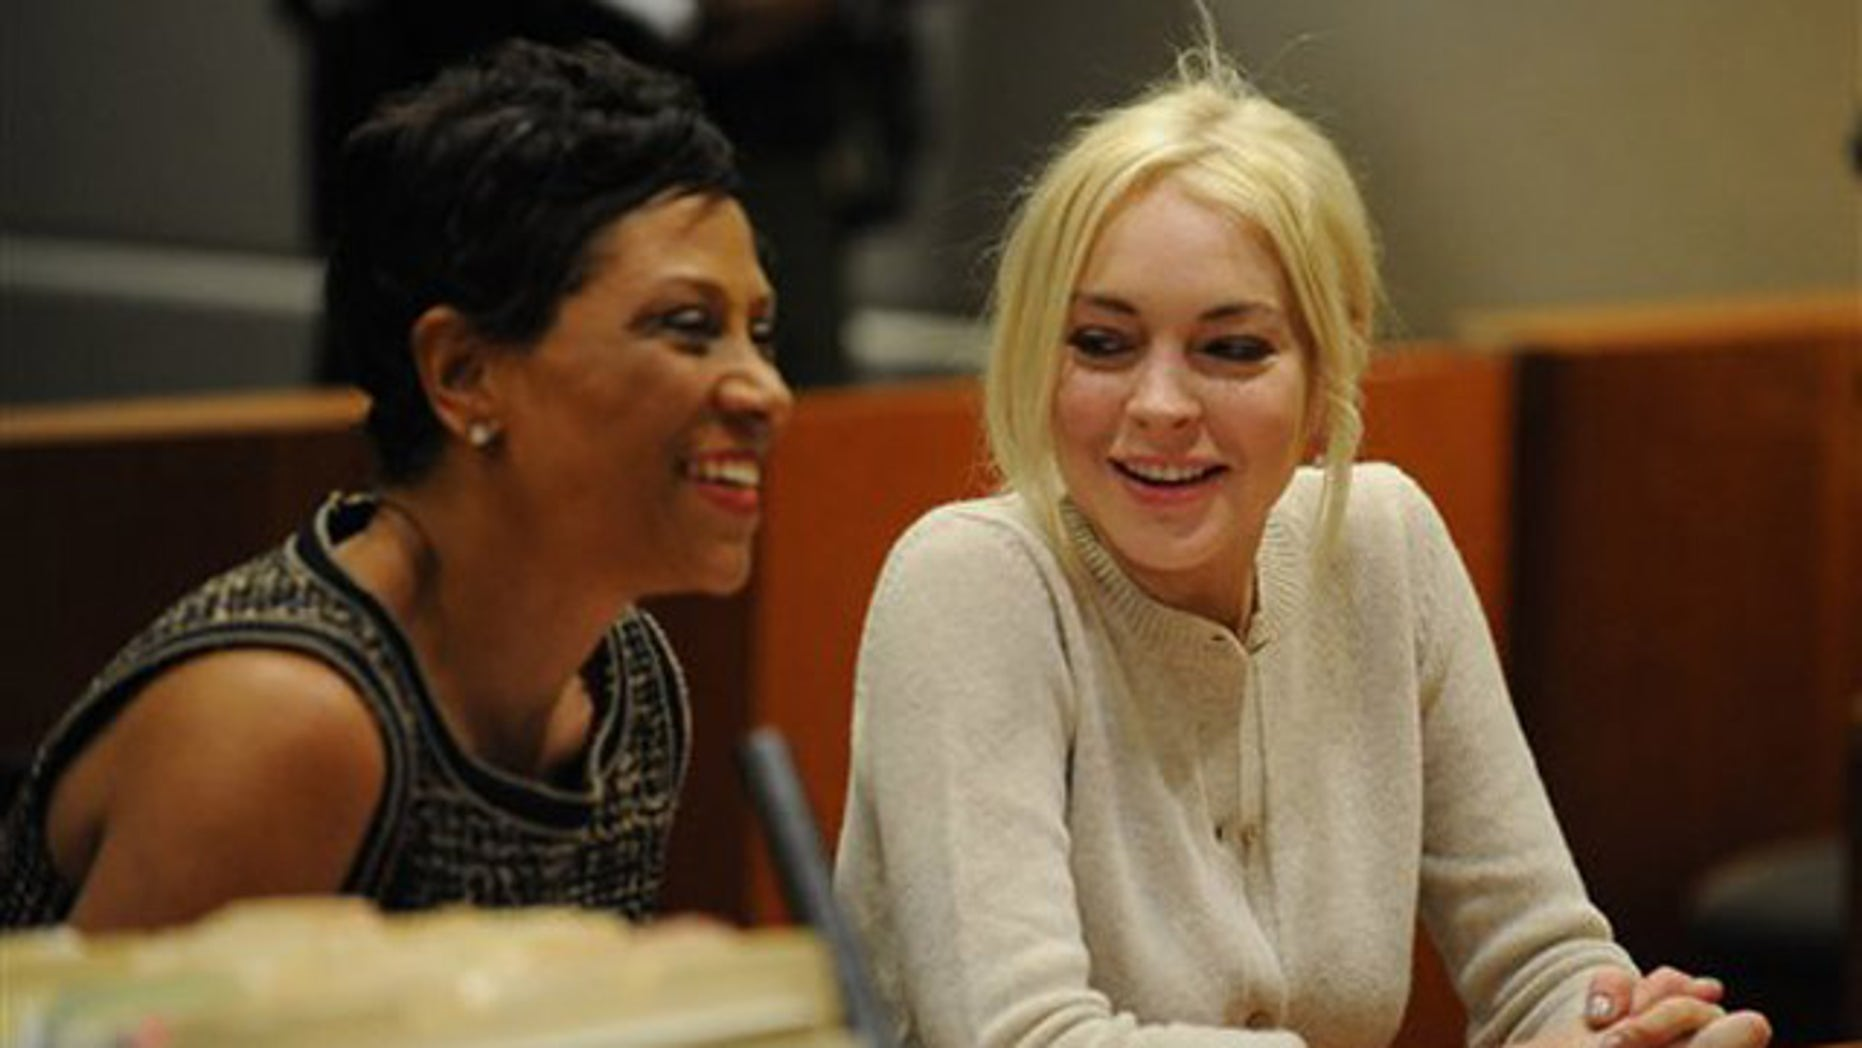 Lindsay Lohan, right, alongside her attorney Shawn Chapman Holley are seen during progress report session at the Los Angeles Superior Court Wednesday, Dec. 14, 2011 in Los Angeles. A judge says Lindsay Lohan is doing well under her strict new probation routine of counseling and working at the county morgue. Lohan remains on probation for a 2007 drunken driving and a grand theft case filed earlier this year. (AP Photo/Michael Nelson, Pool)